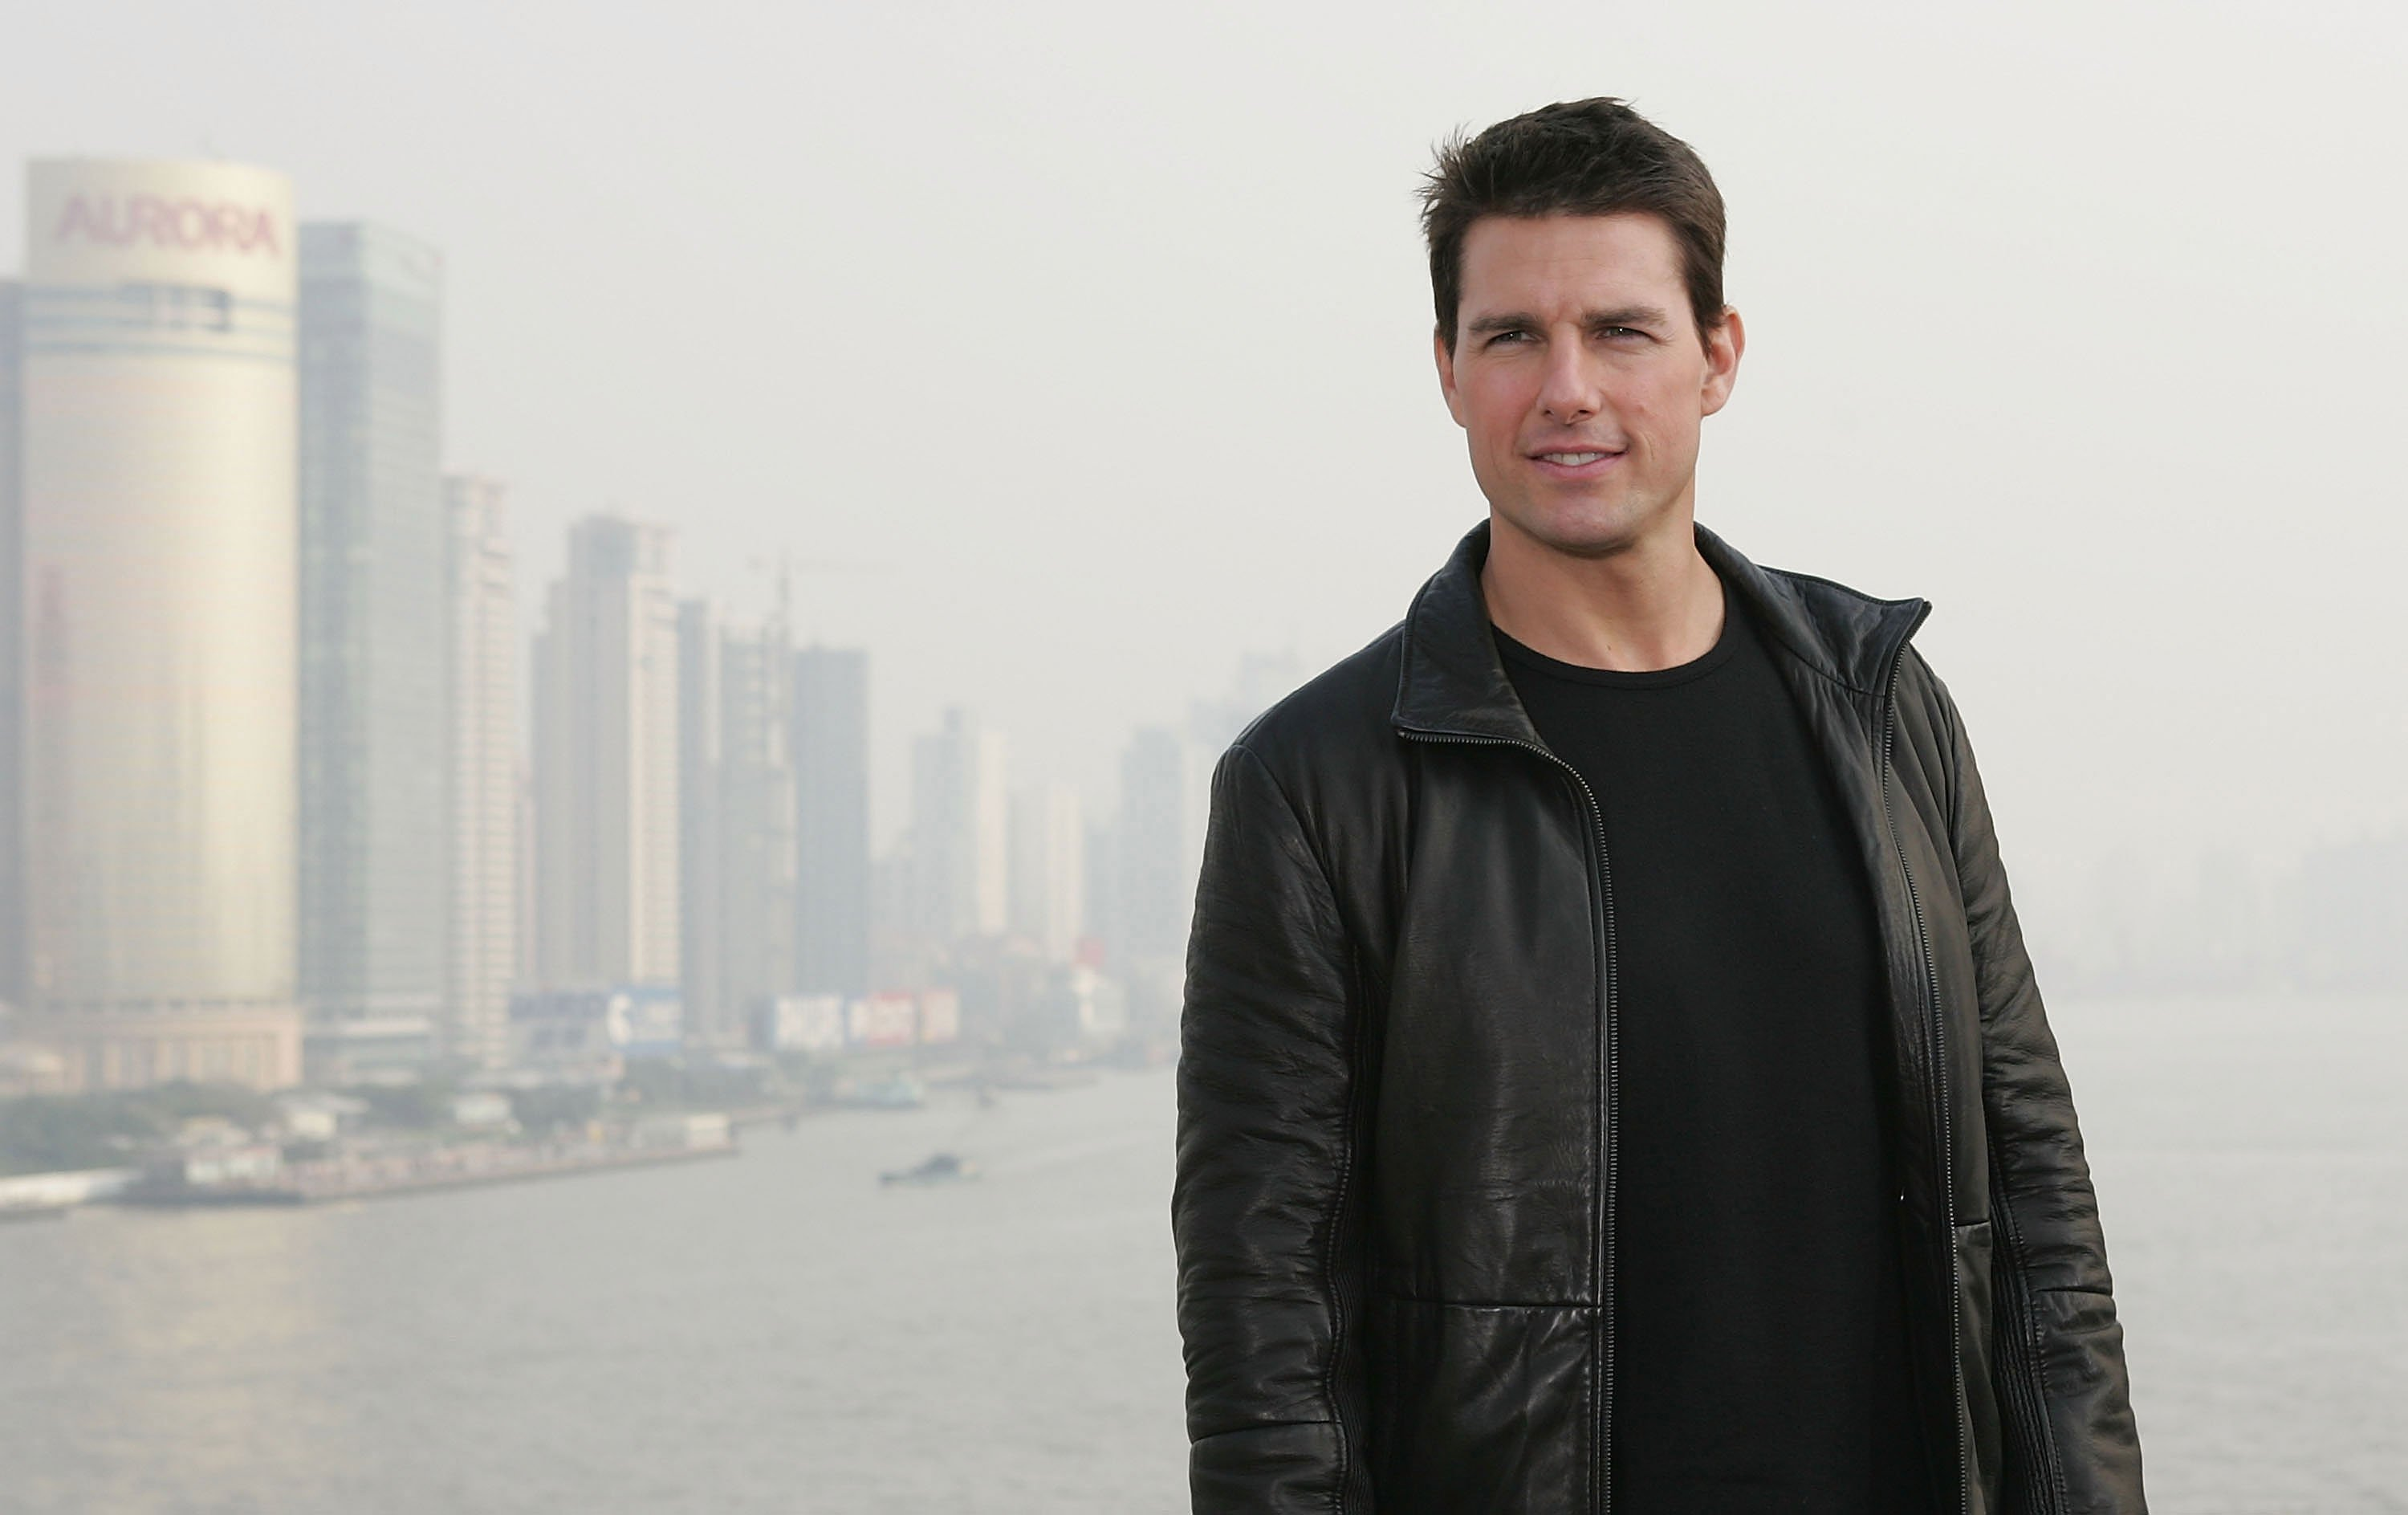 Tom Cruise Image Source: Getty Images.